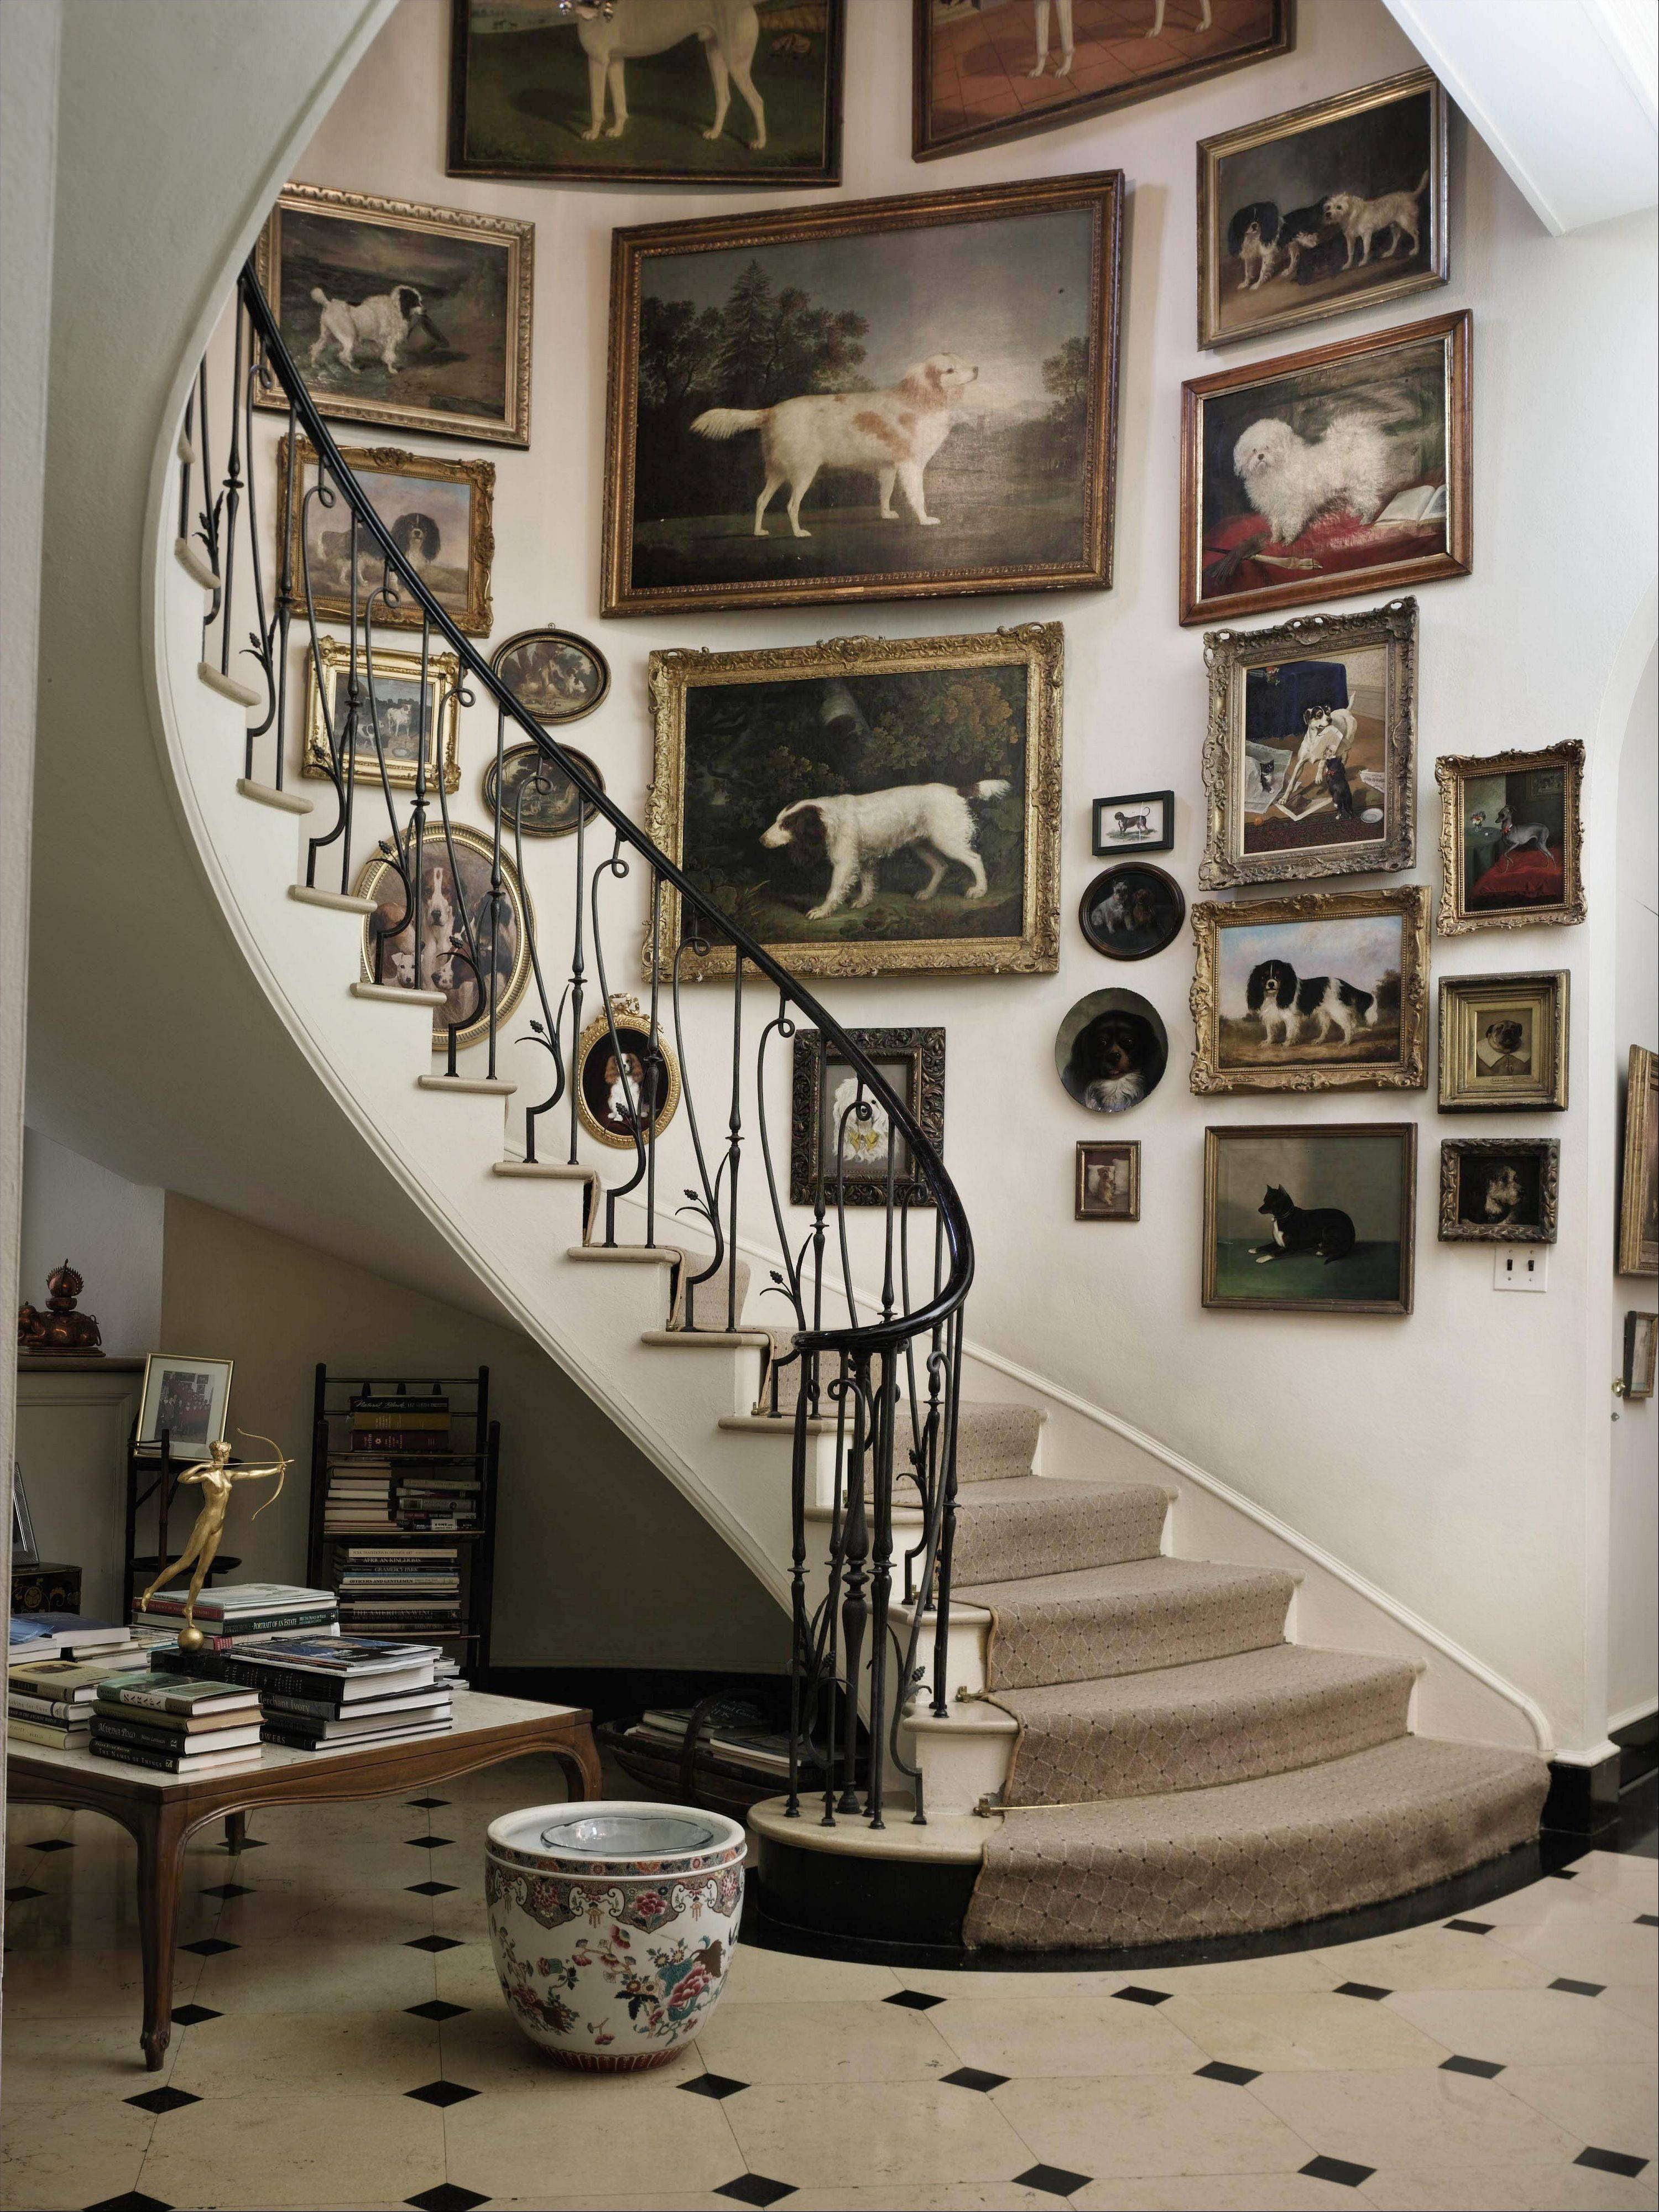 The pre-auction staircase at Brooke Astor�s Westchester estate, Holly Hill, in Briarcliff Manor, New York.